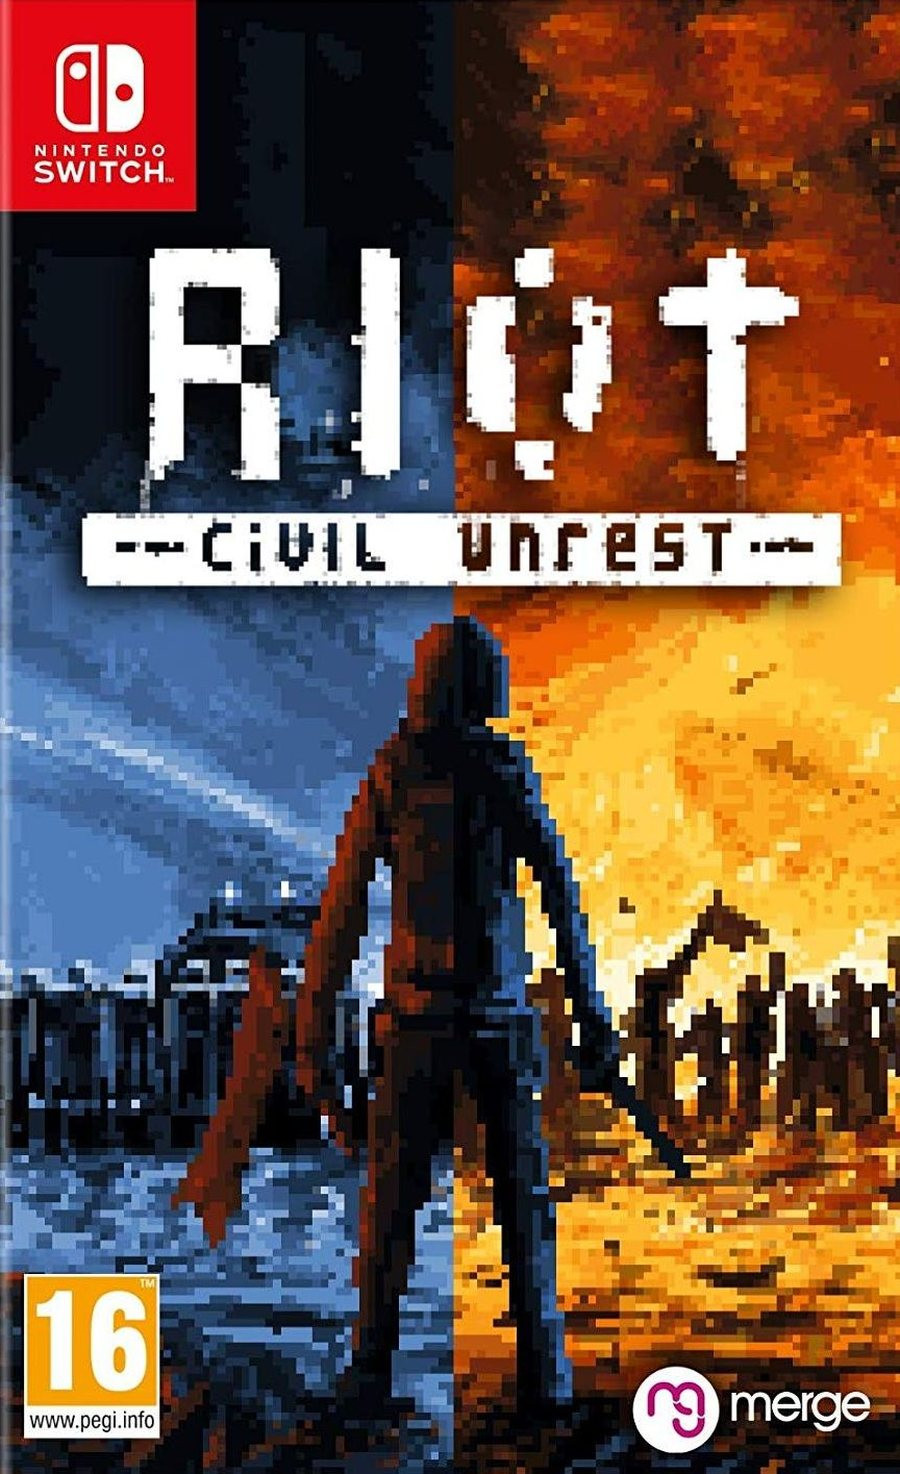 SWITCH RIOT - Civil Unrest